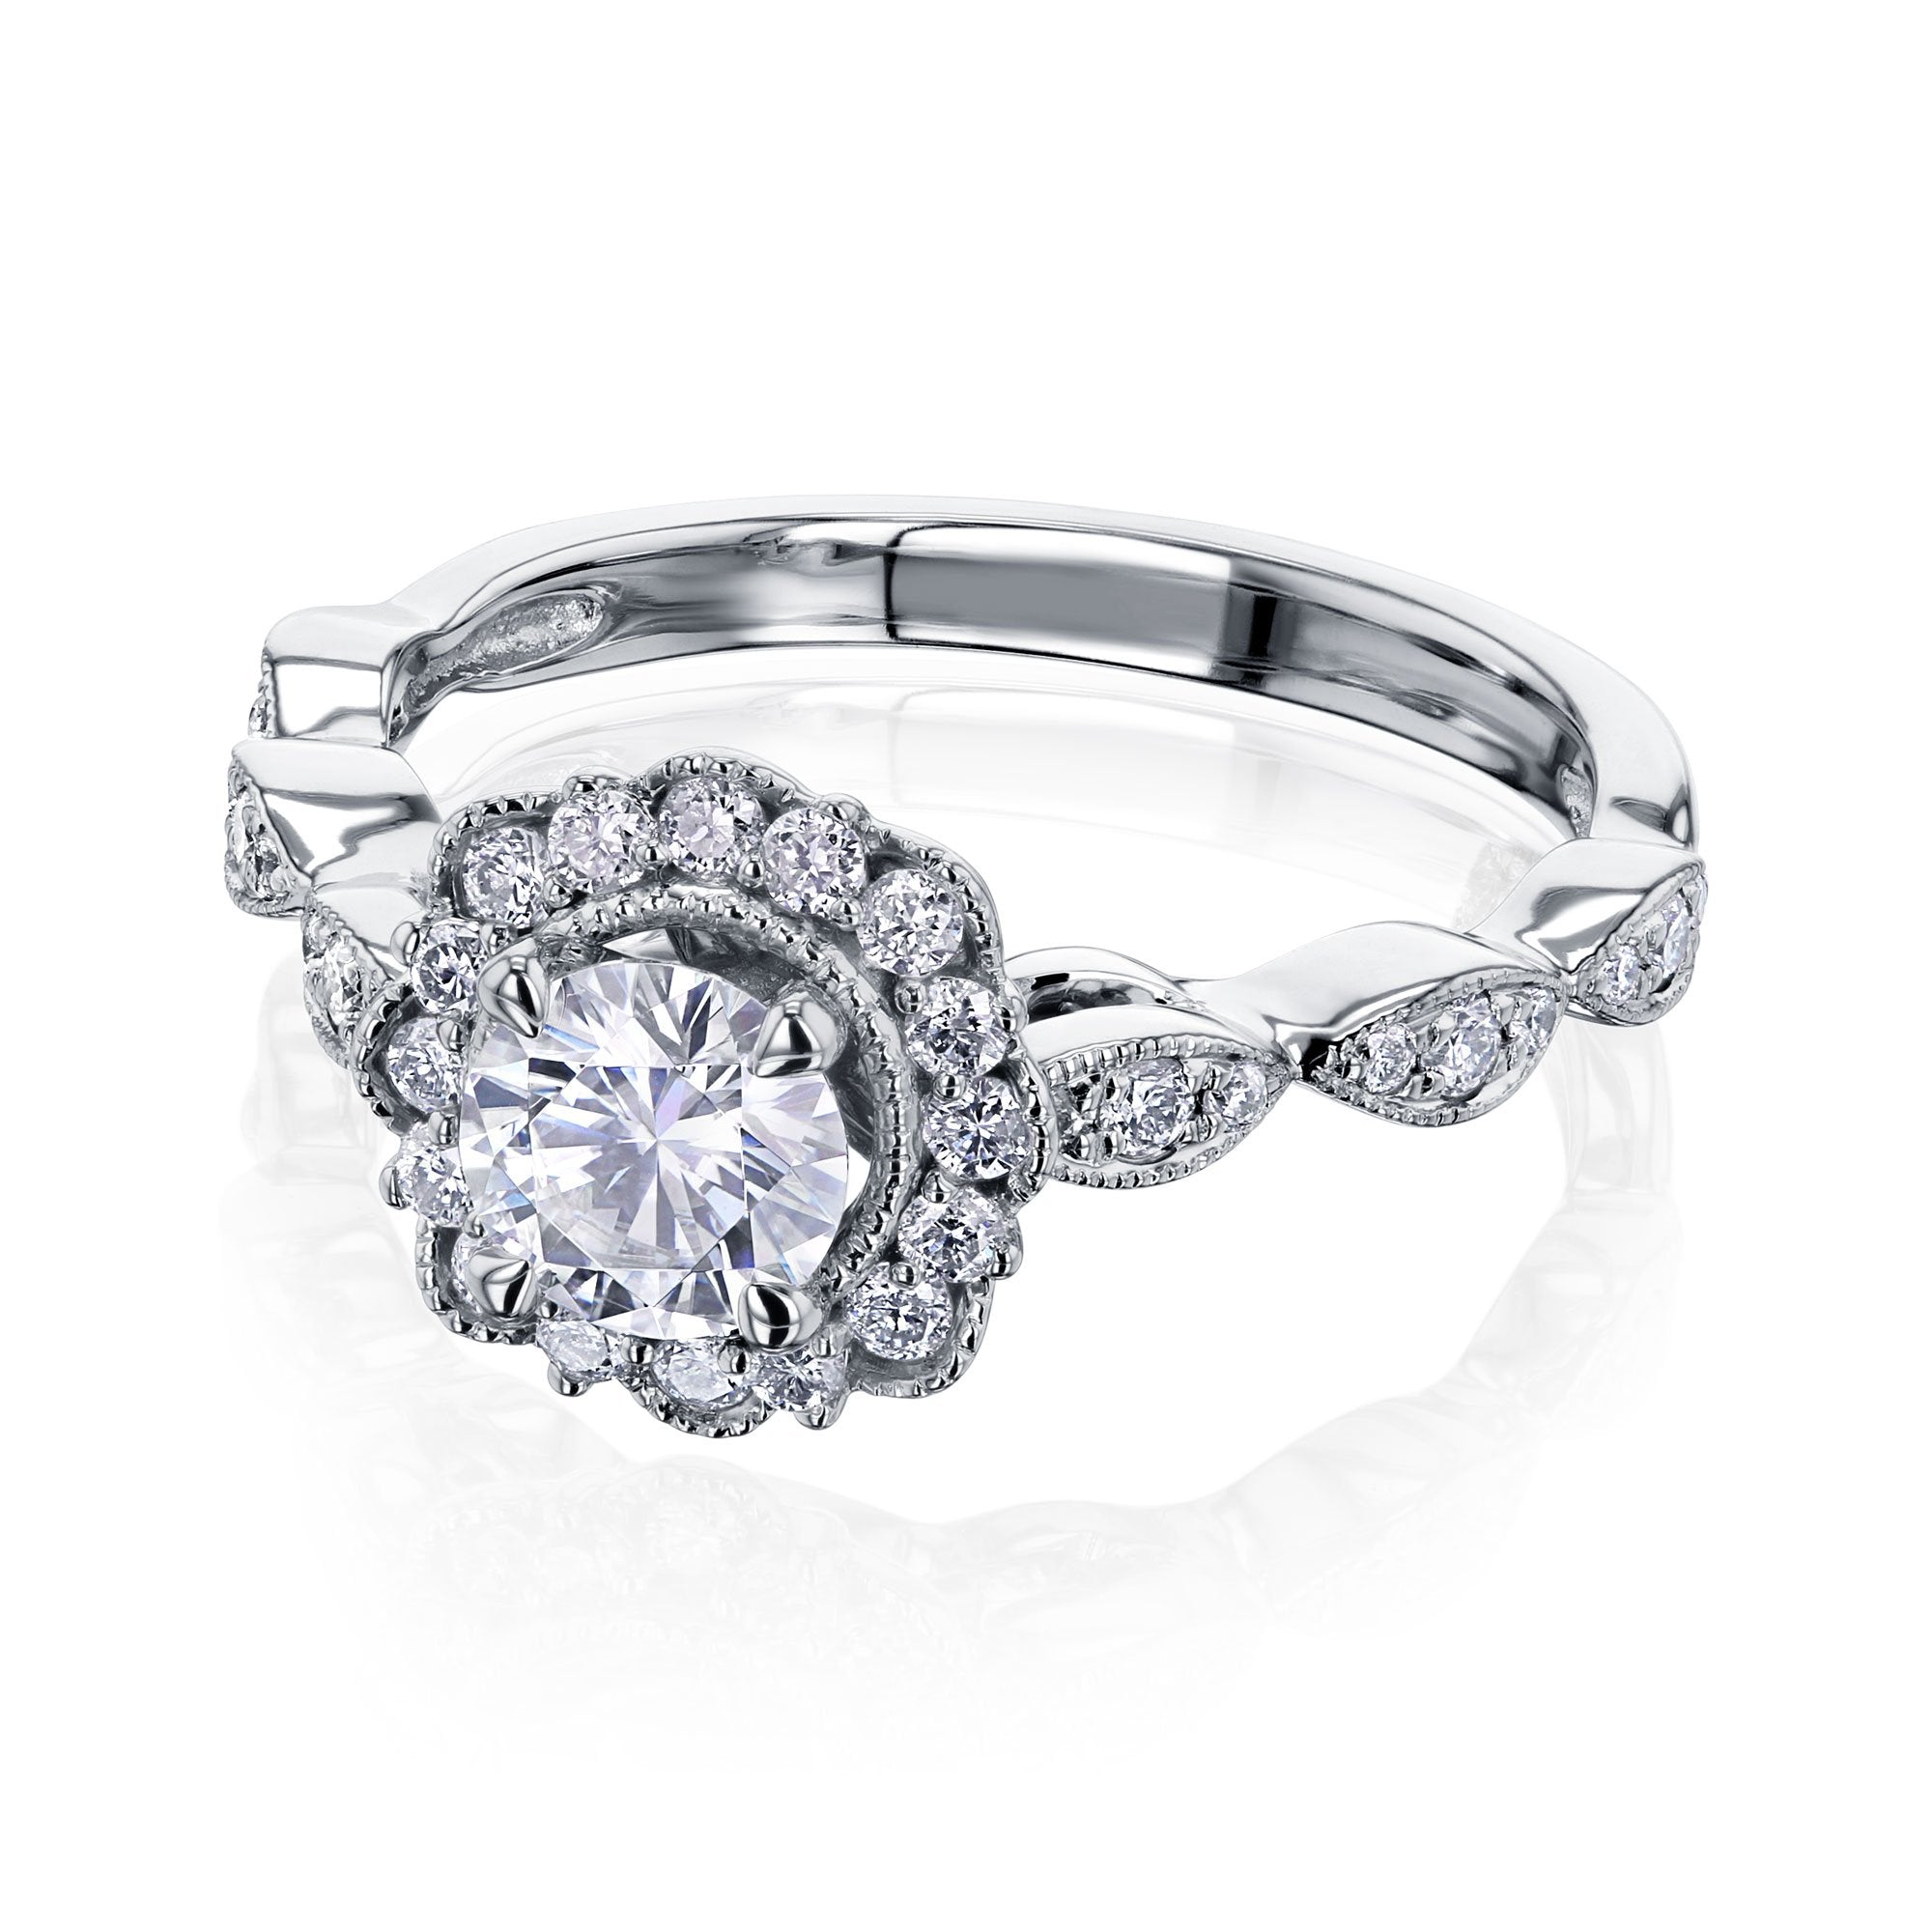 Promos The Floral Spring Diamond Ring - 10.0